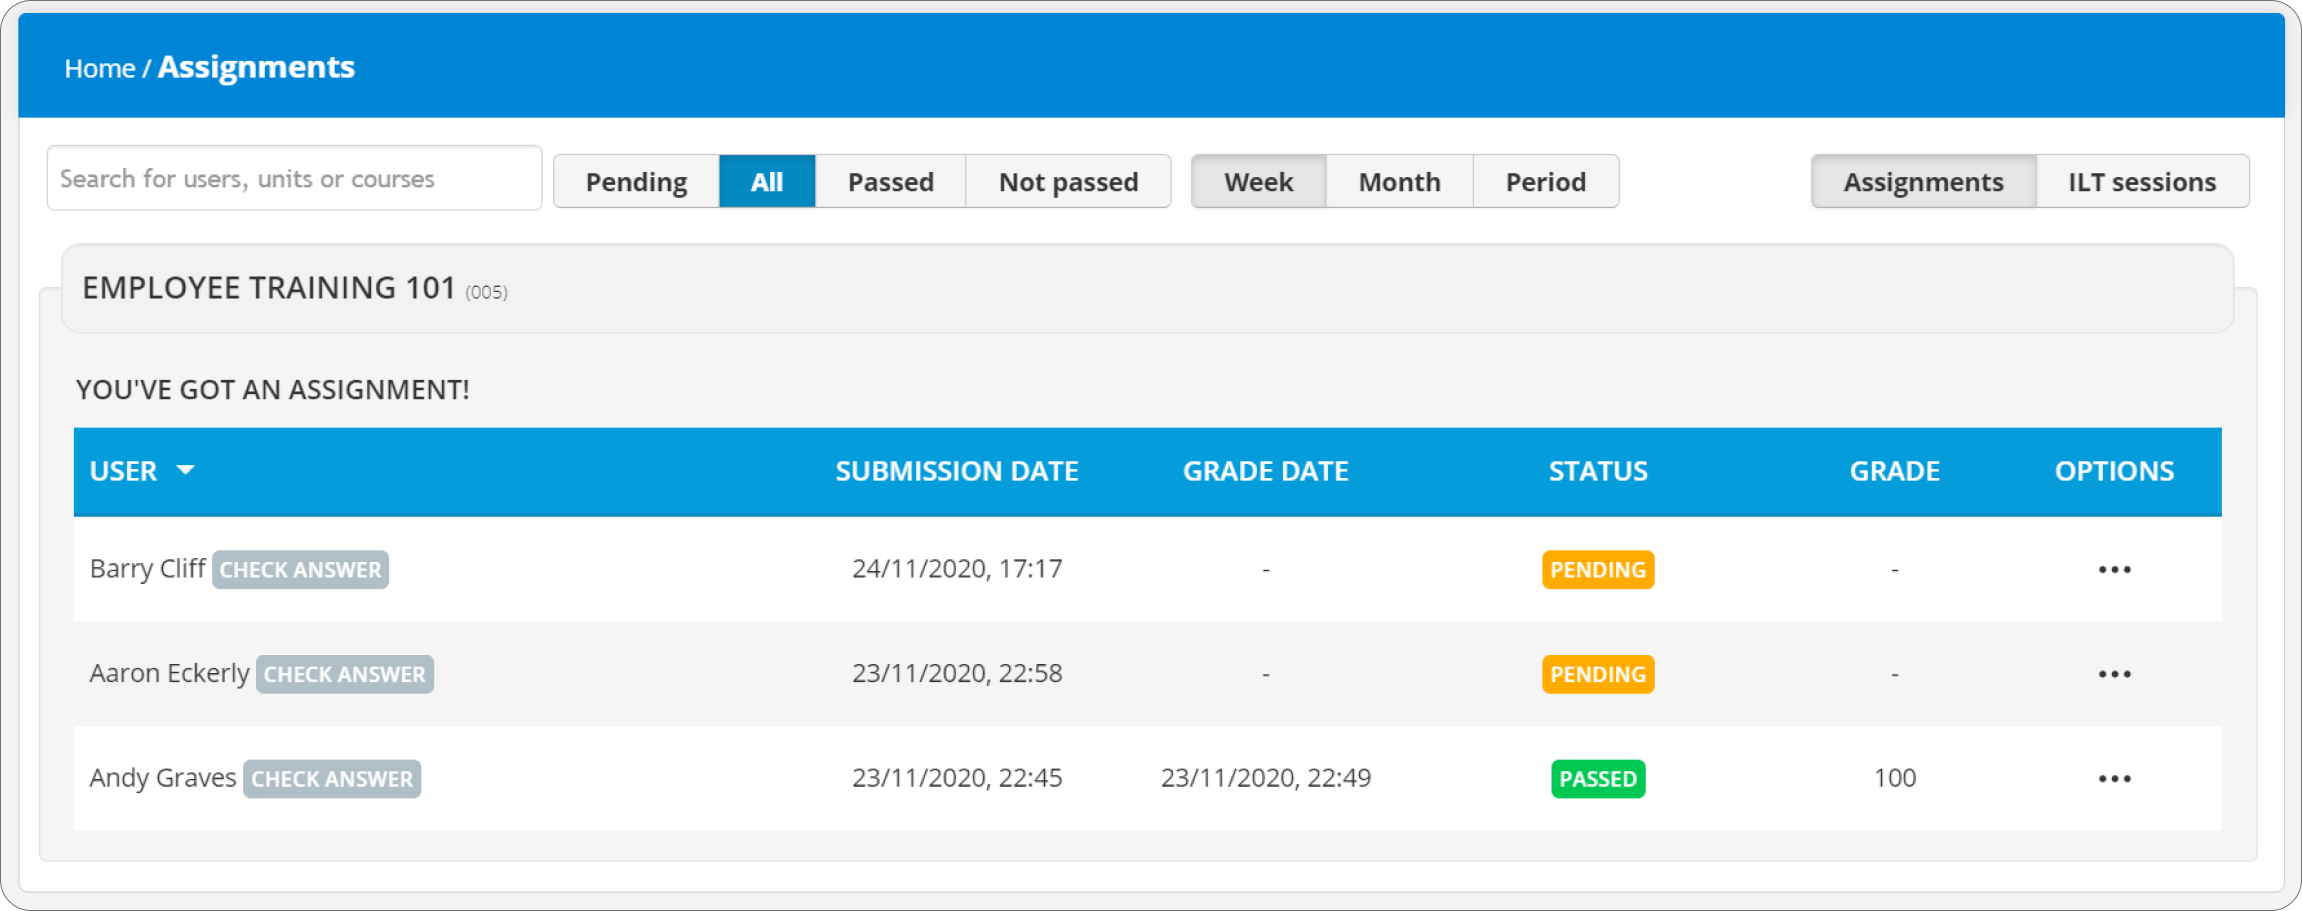 assignments-ilt-instructor-view-image